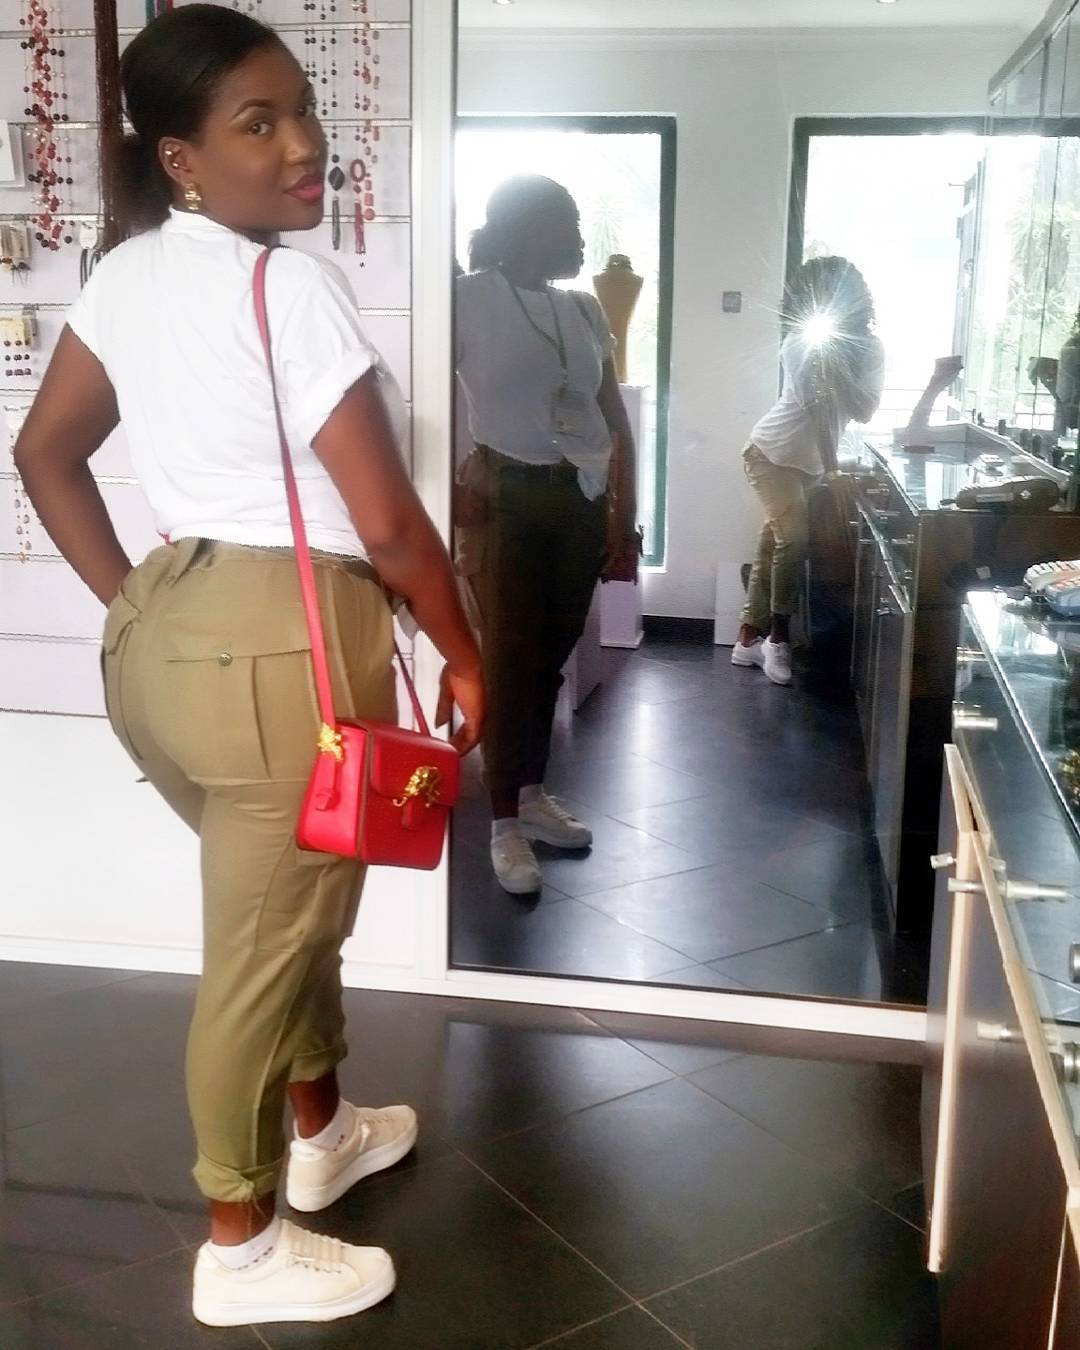 Curvy Corper With Big Backside Breaks The Internet (Photo) Curvy Corper With Big Backside Breaks The Internet (Photo) 4895709 instaimage35 jpeg5548e63a17d944501f77416c9c44b867